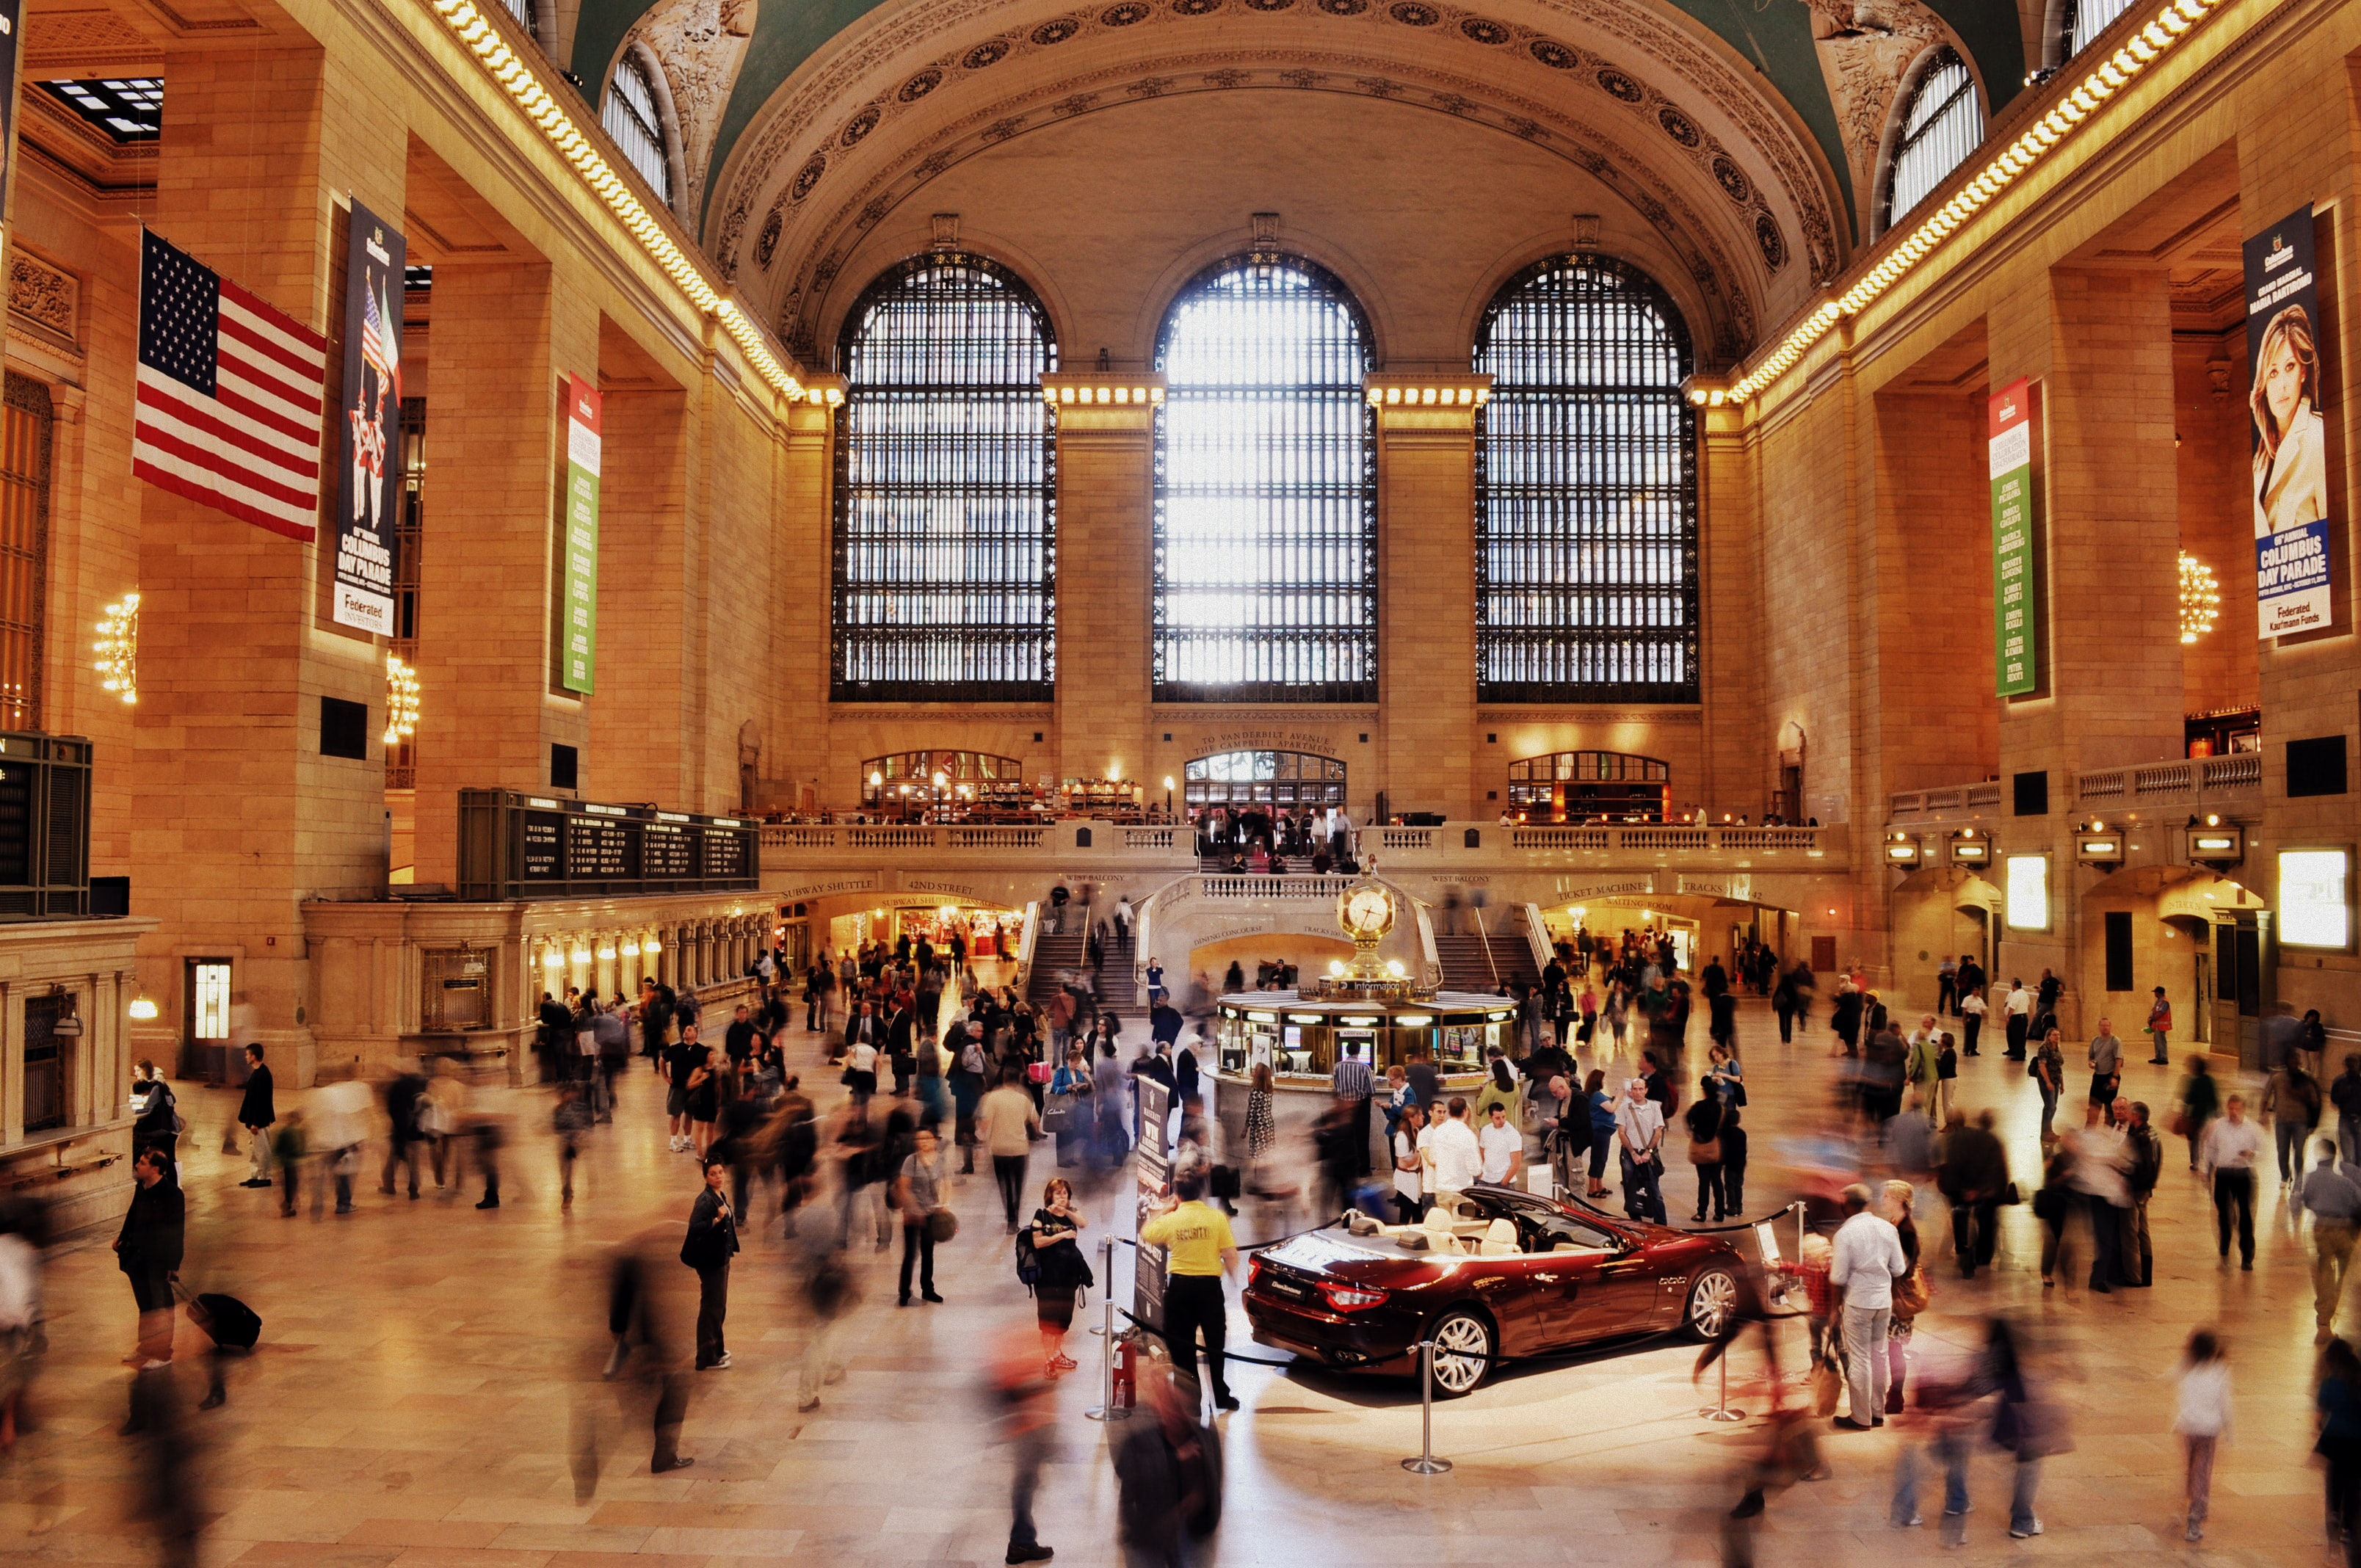 A long-exposure shot of the crowded Grand Central Station